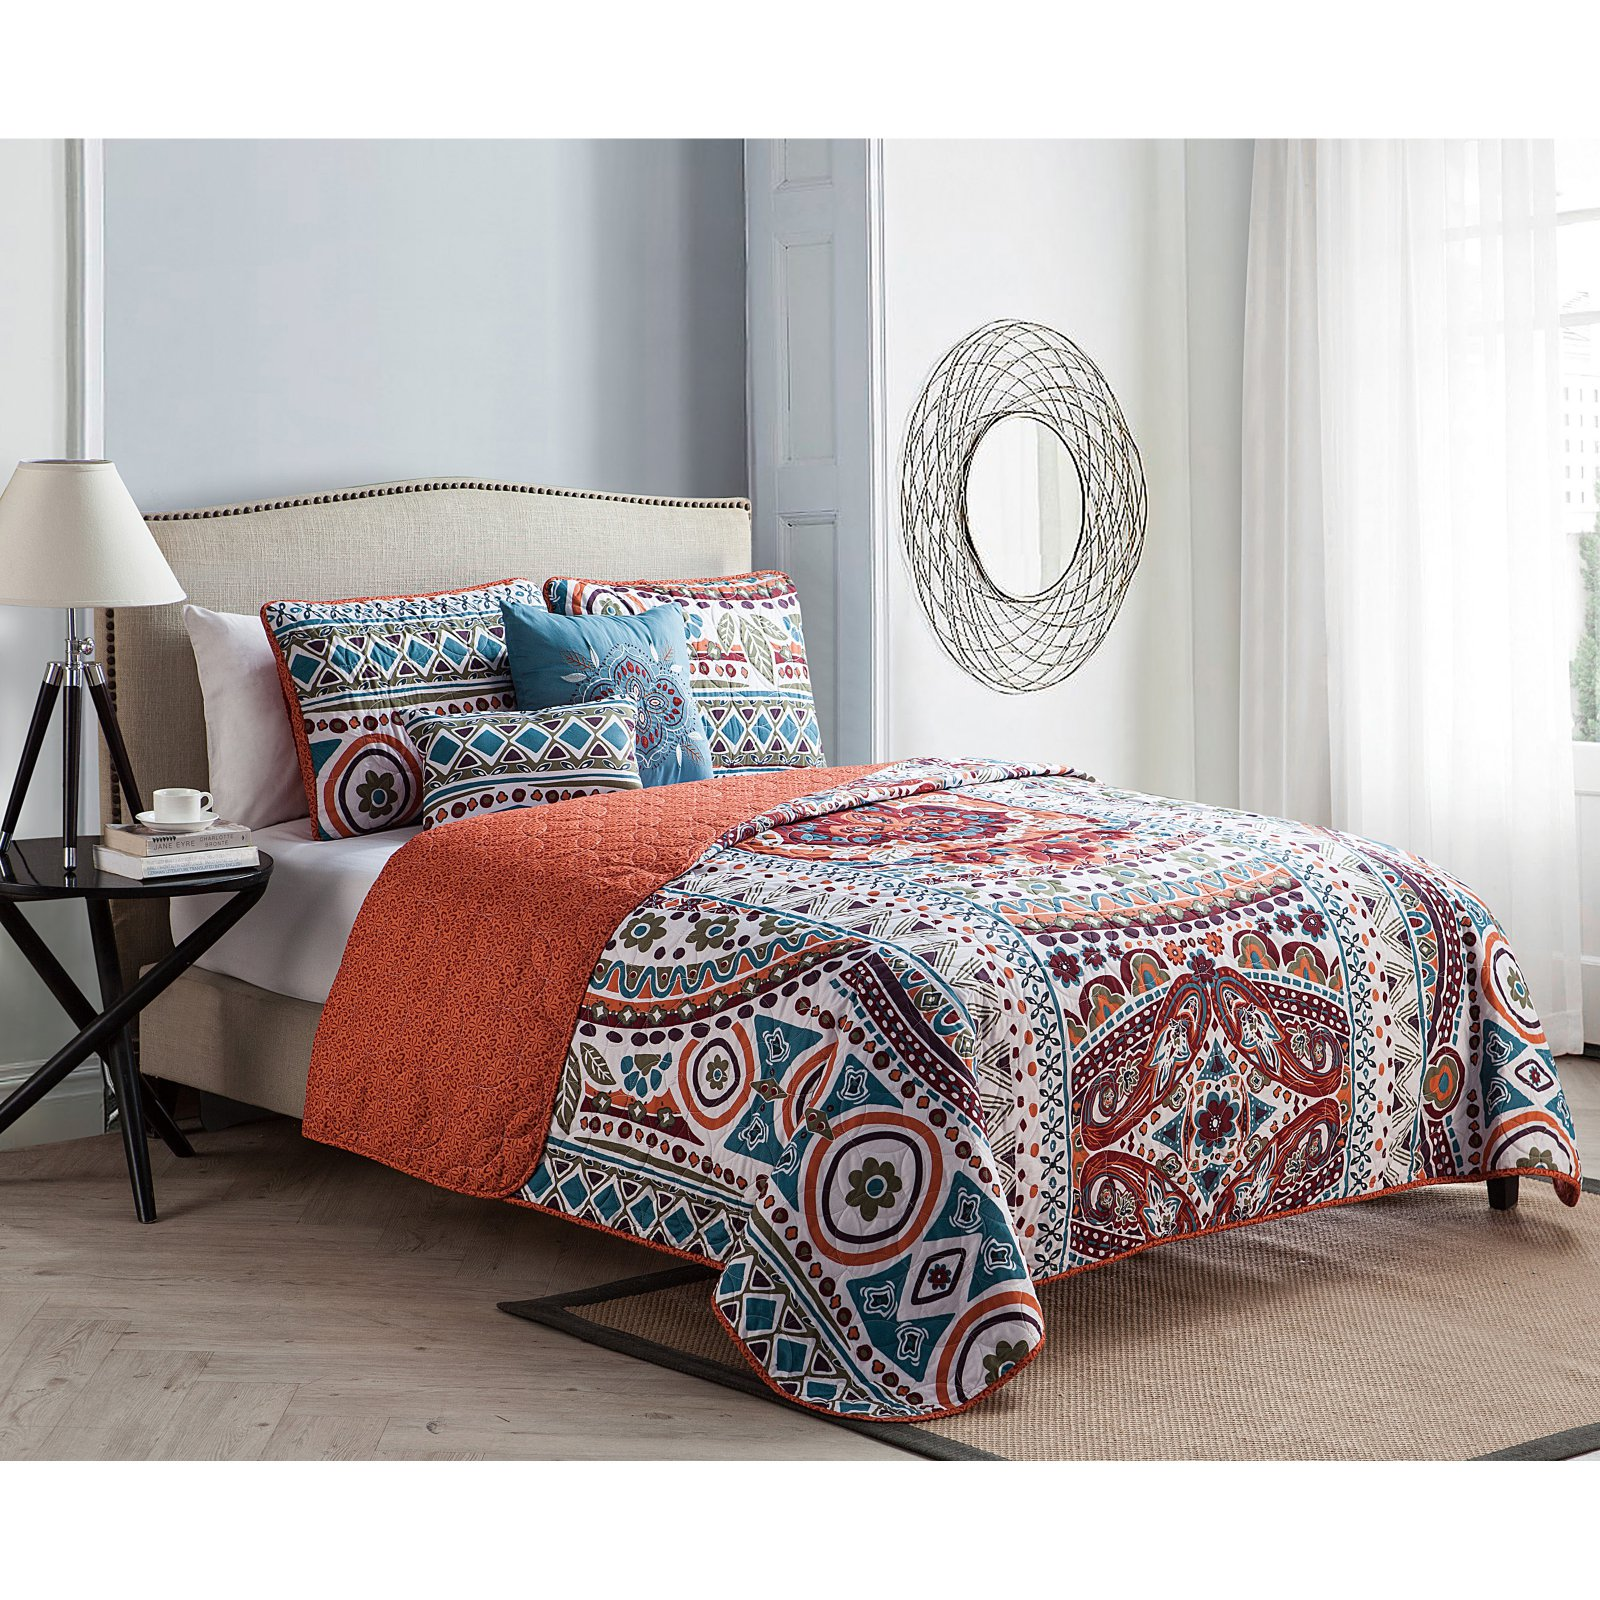 ***DISCONTINUED*** VCNY Natasha Textured Geometric Stripe Reversible Bedding Quilt Set, Multiple Colors Available